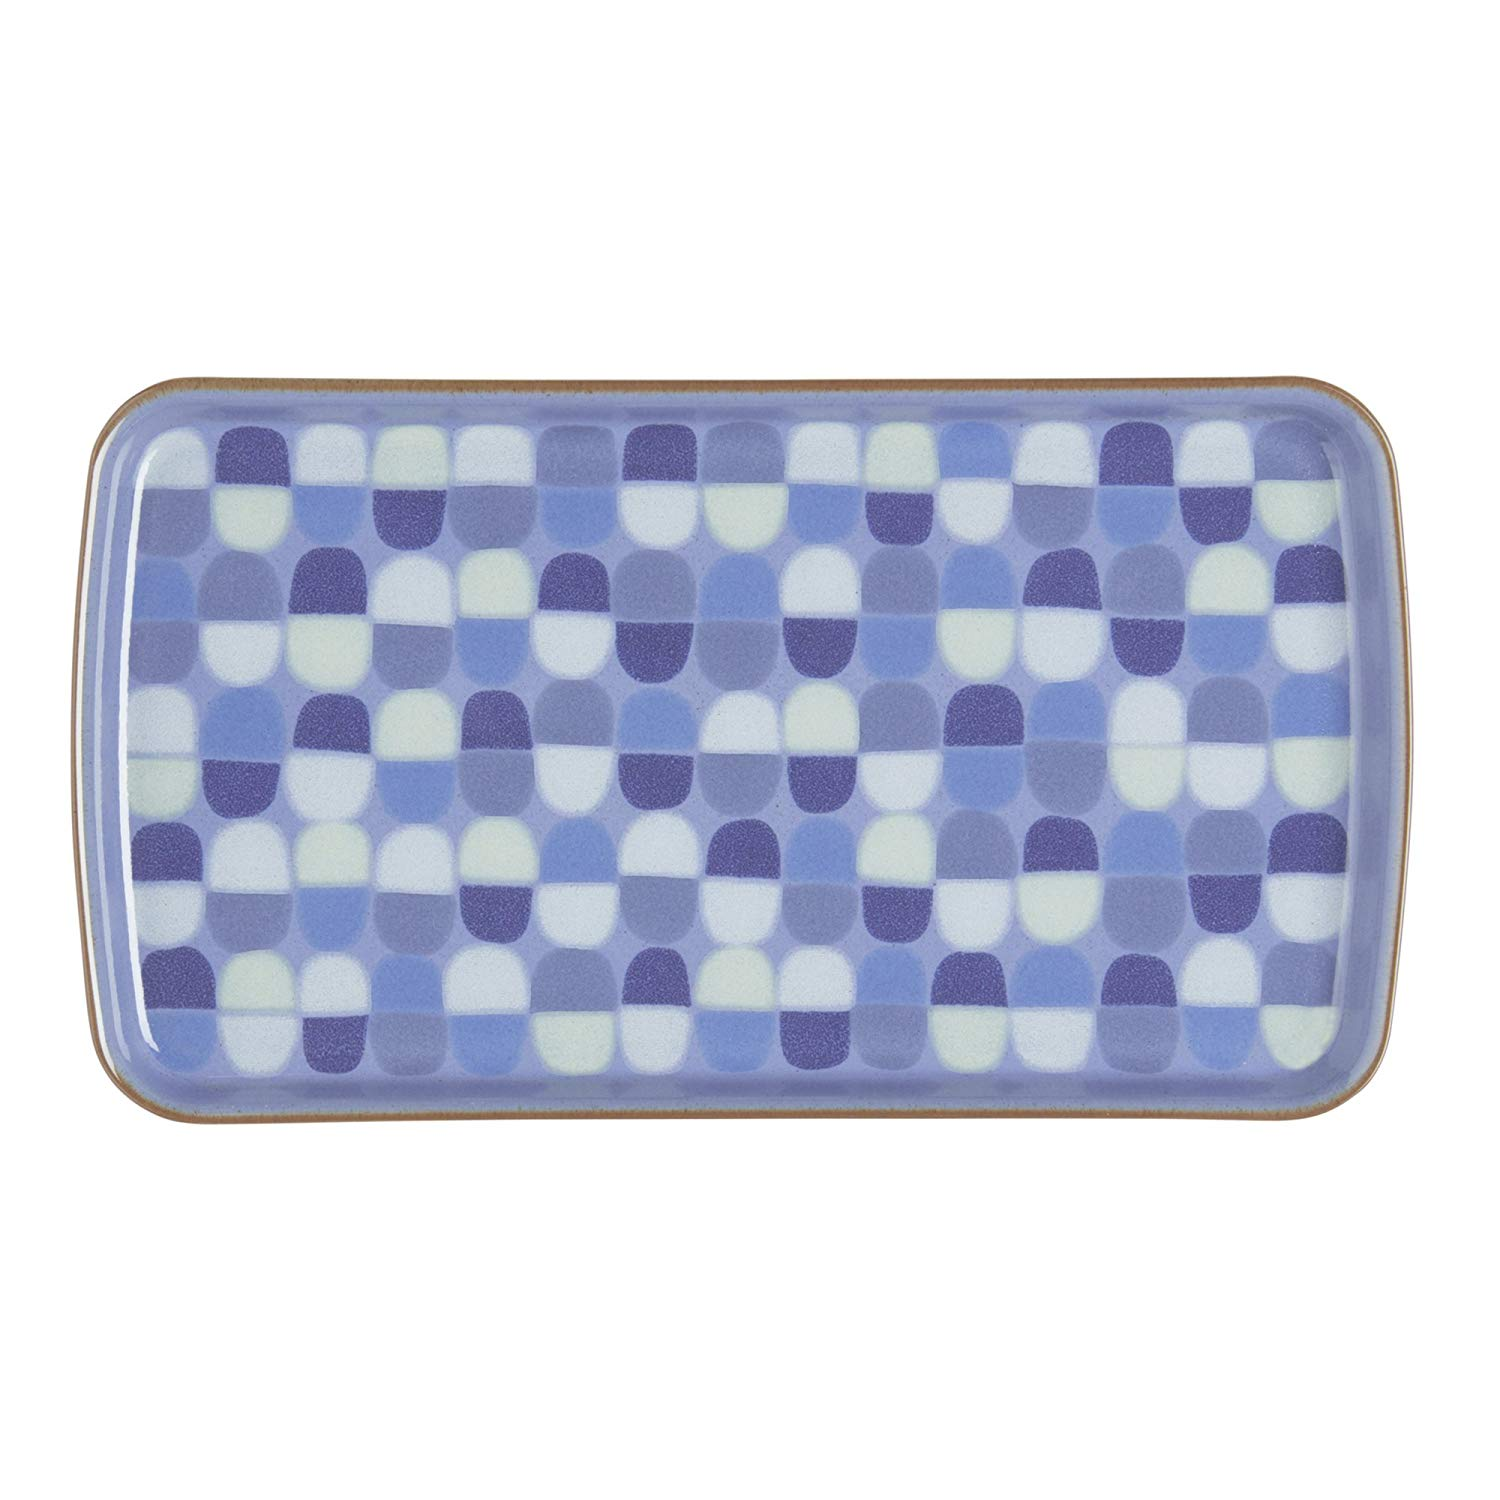 Denby USA Heritage Fountain Accent Rectangular Plate, Multicolor